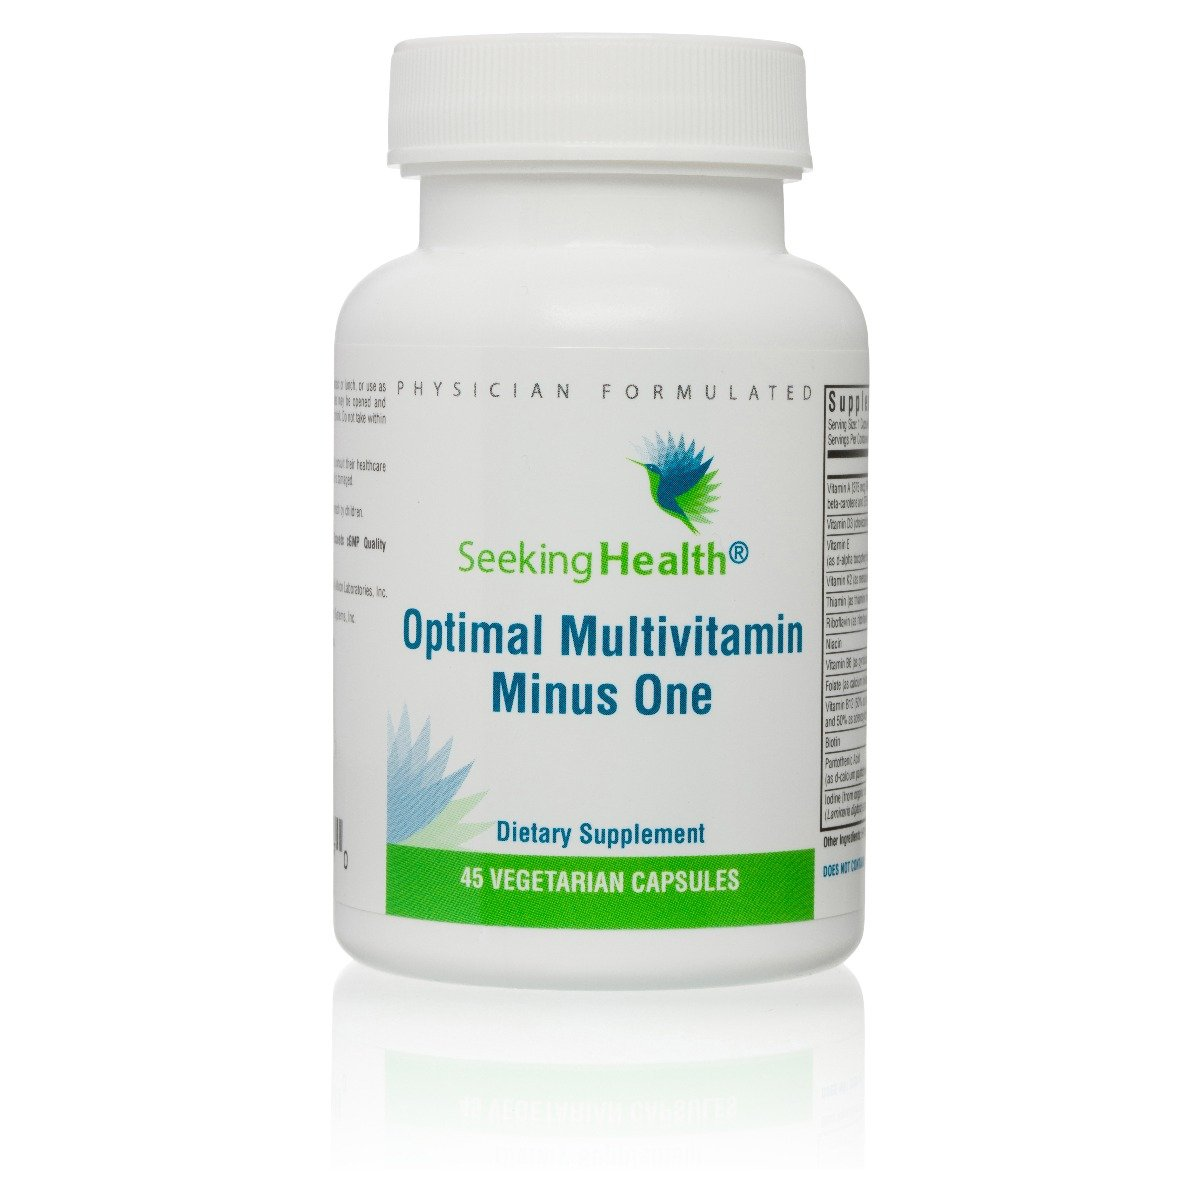 Optimal Multivitamin Minus One 45 Capsules